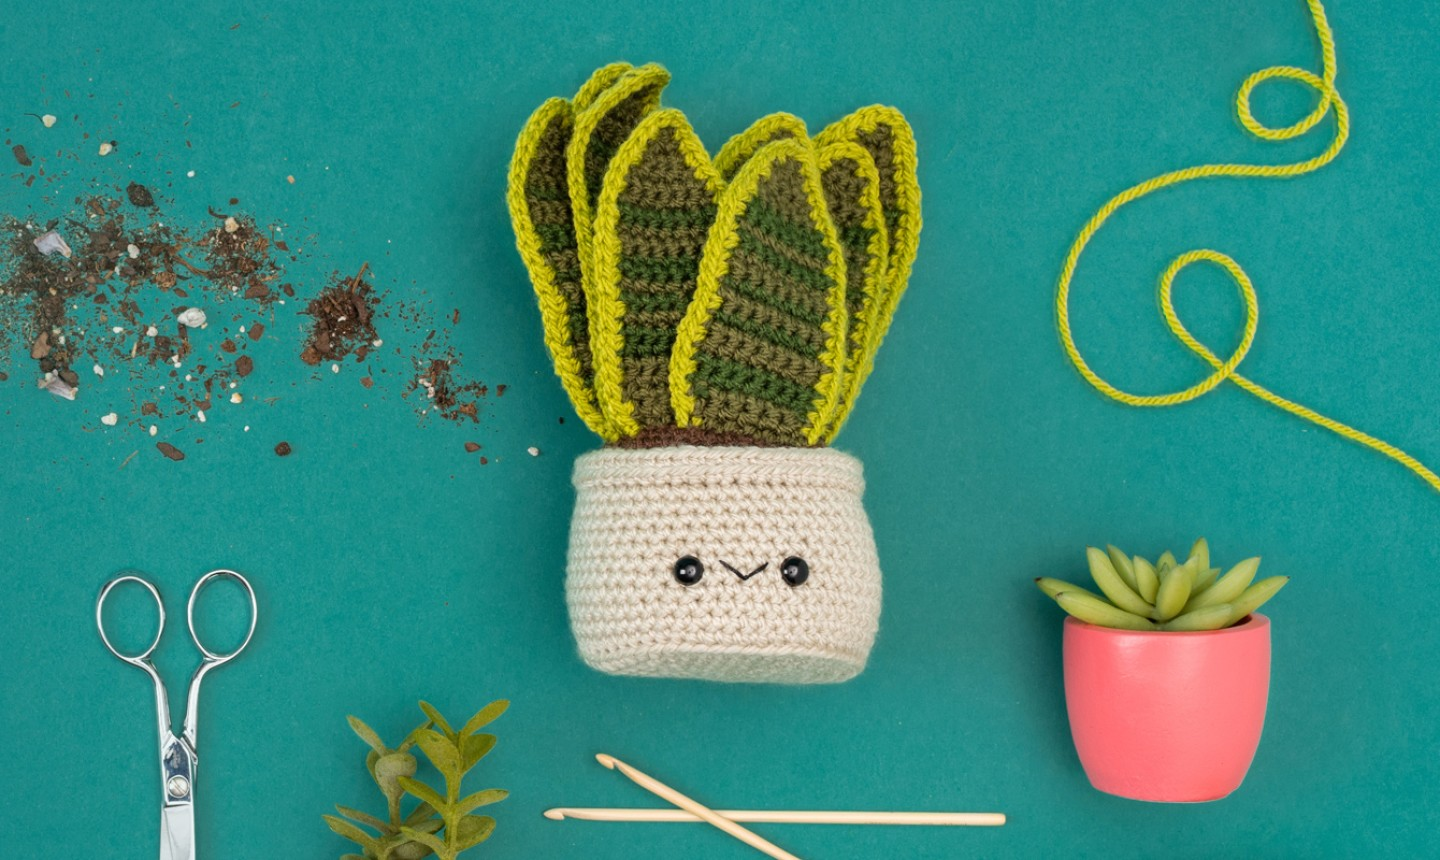 Crochet plants with tools